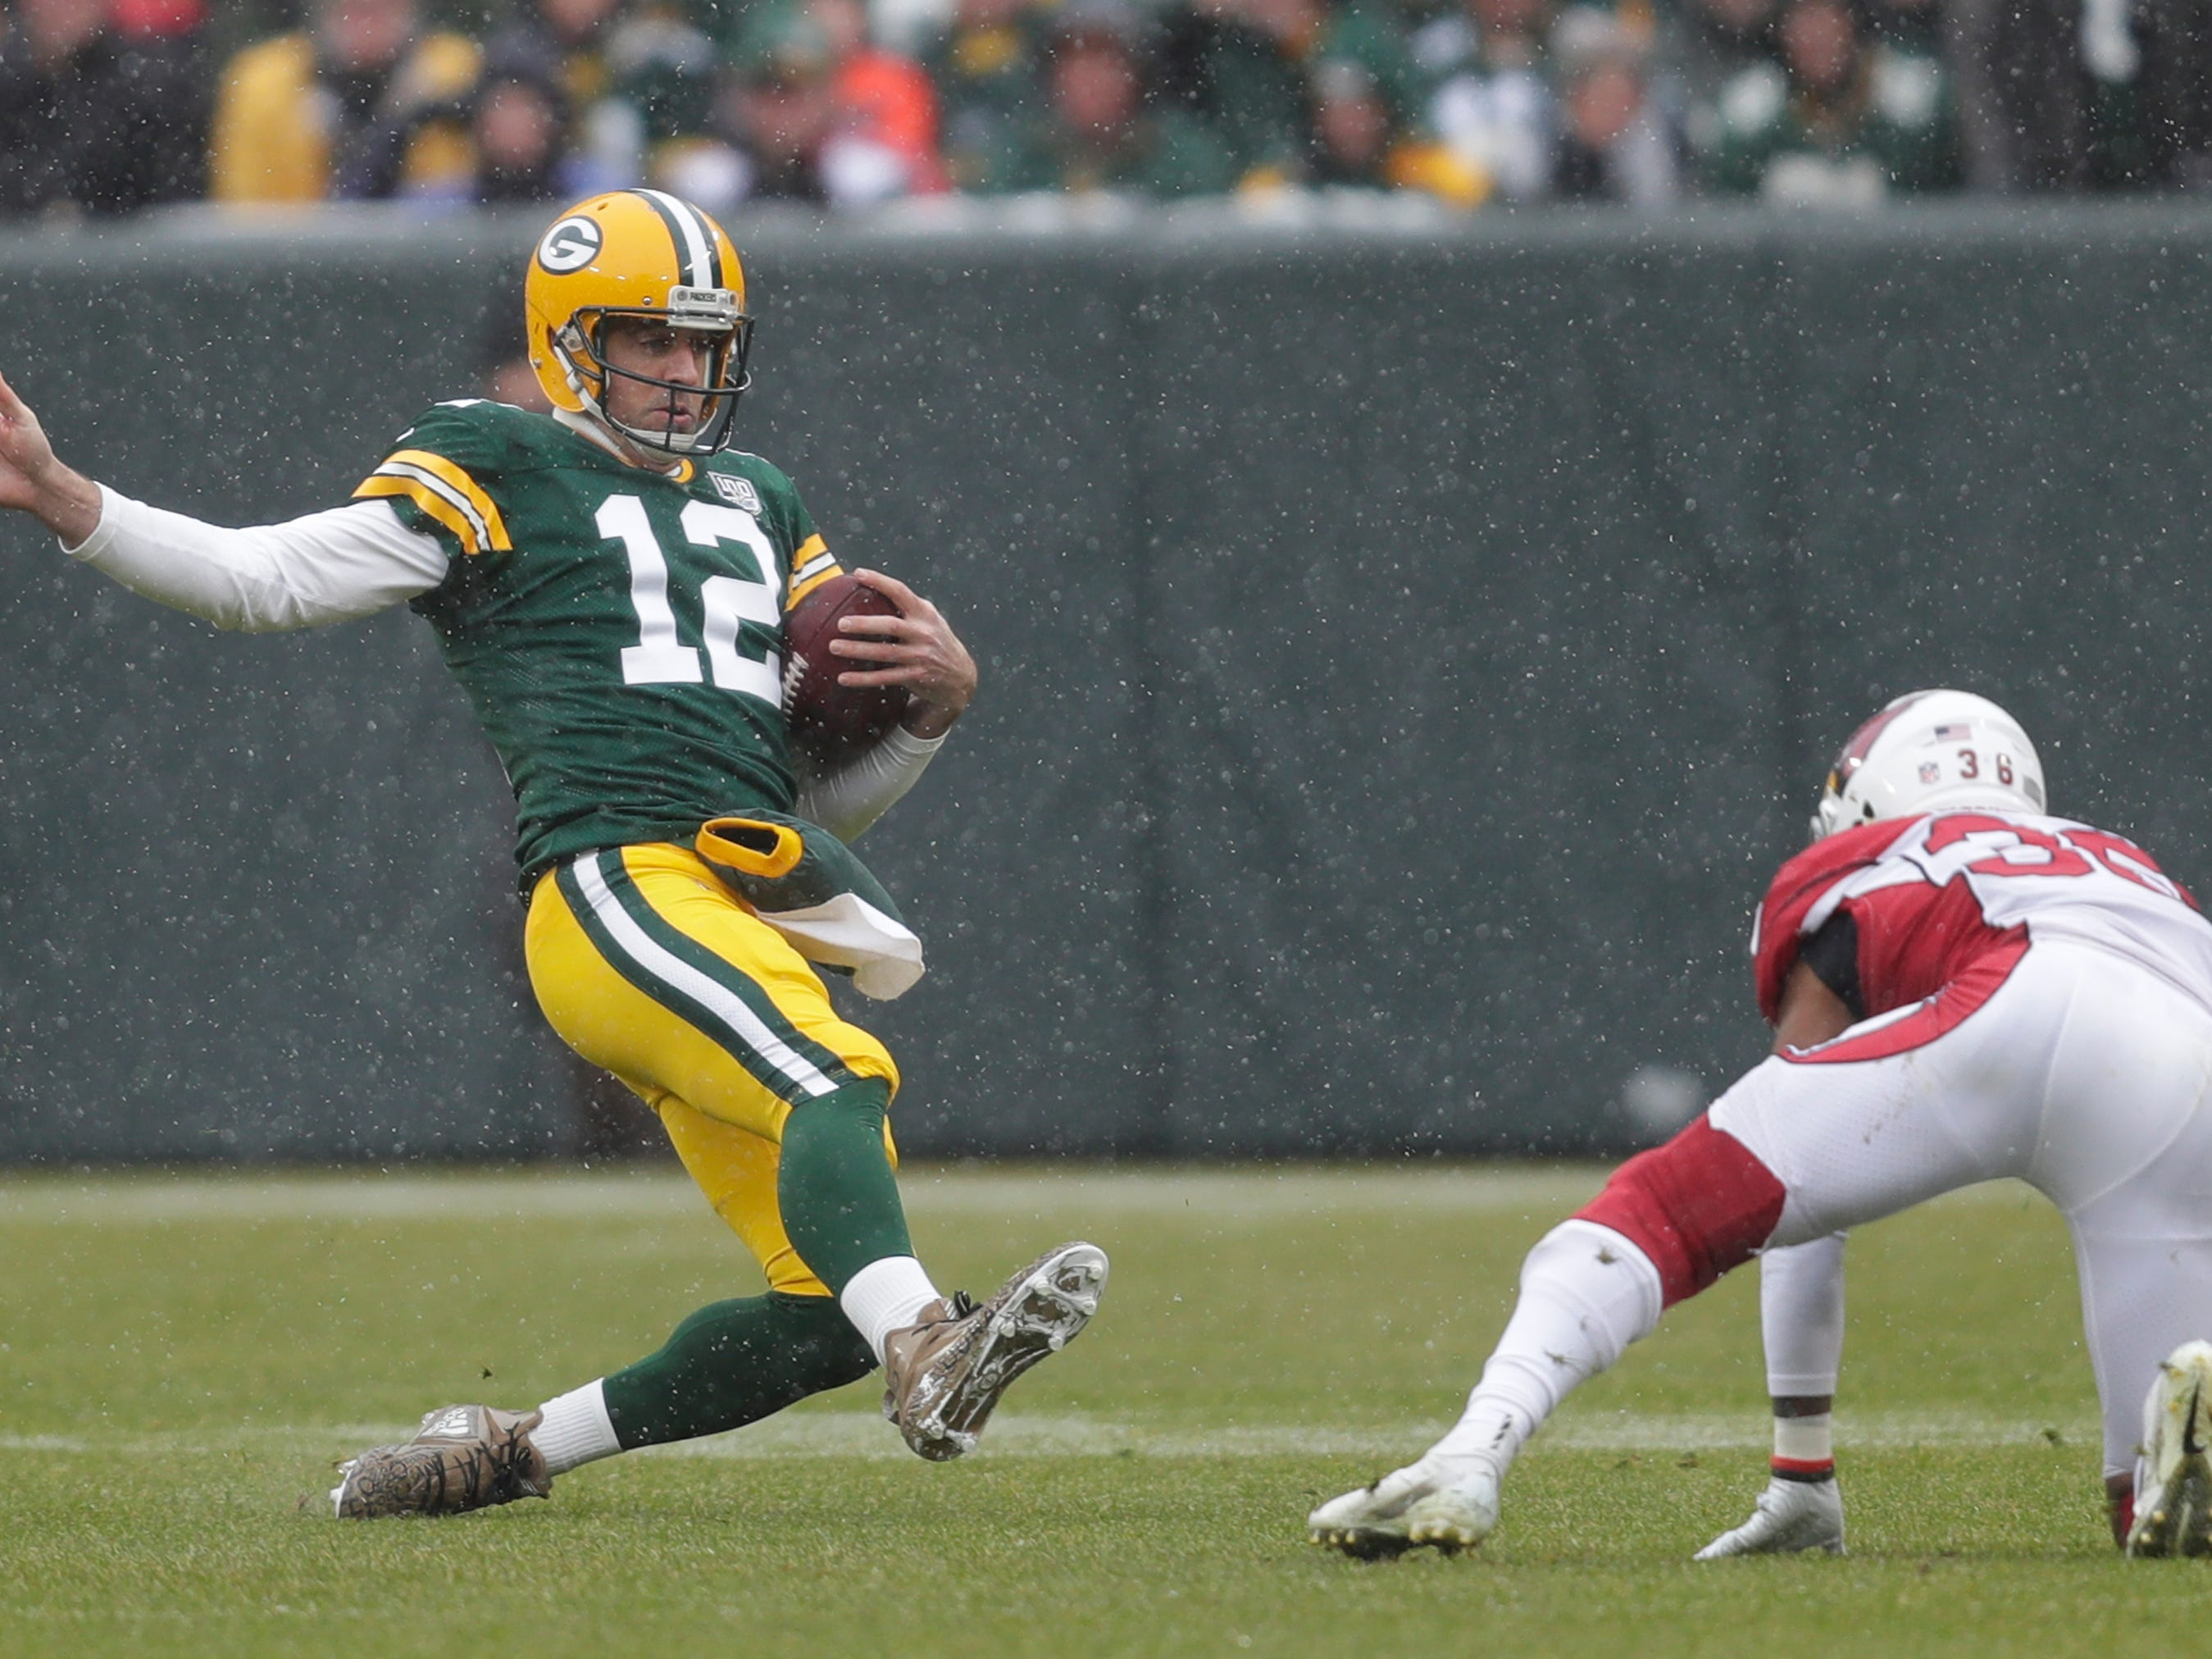 Green Bay Packers quarterback Aaron Rodgers (12) slides for yardage against Arizona Cardinals strong safety Budda Baker (36) in the first quarter Sunday, December 2, 2018, at Lambeau Field in Green Bay, Wis.